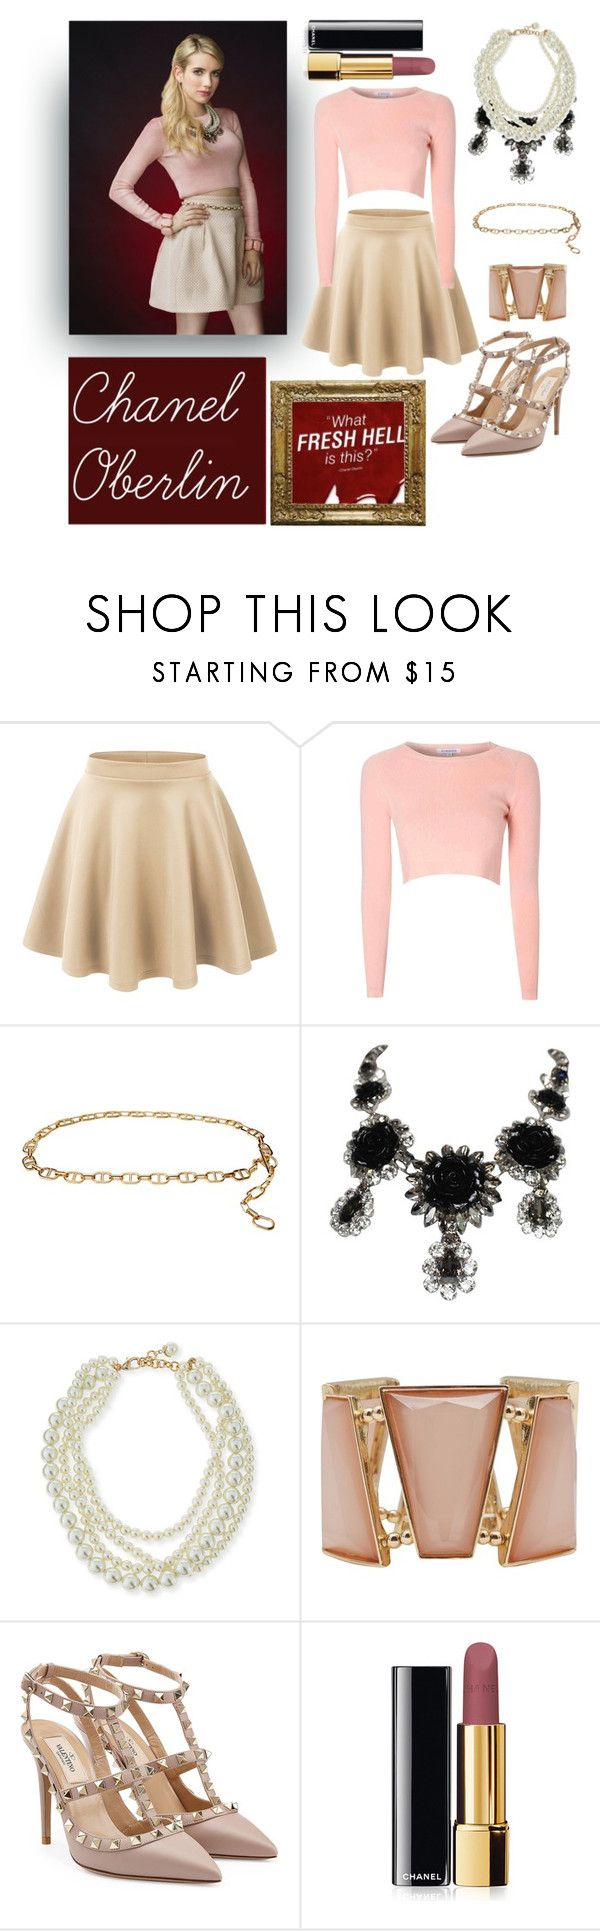 """""""Chanel Oberlin Costume - Scream Queens"""" by victoria-chinchilla-arques ❤ liked on Polyvore featuring LE3NO, Glamorous, MICHAEL Michael Kors, Philippe Ferrandis, Lulu Frost, M&Co, Valentino and Chanel"""